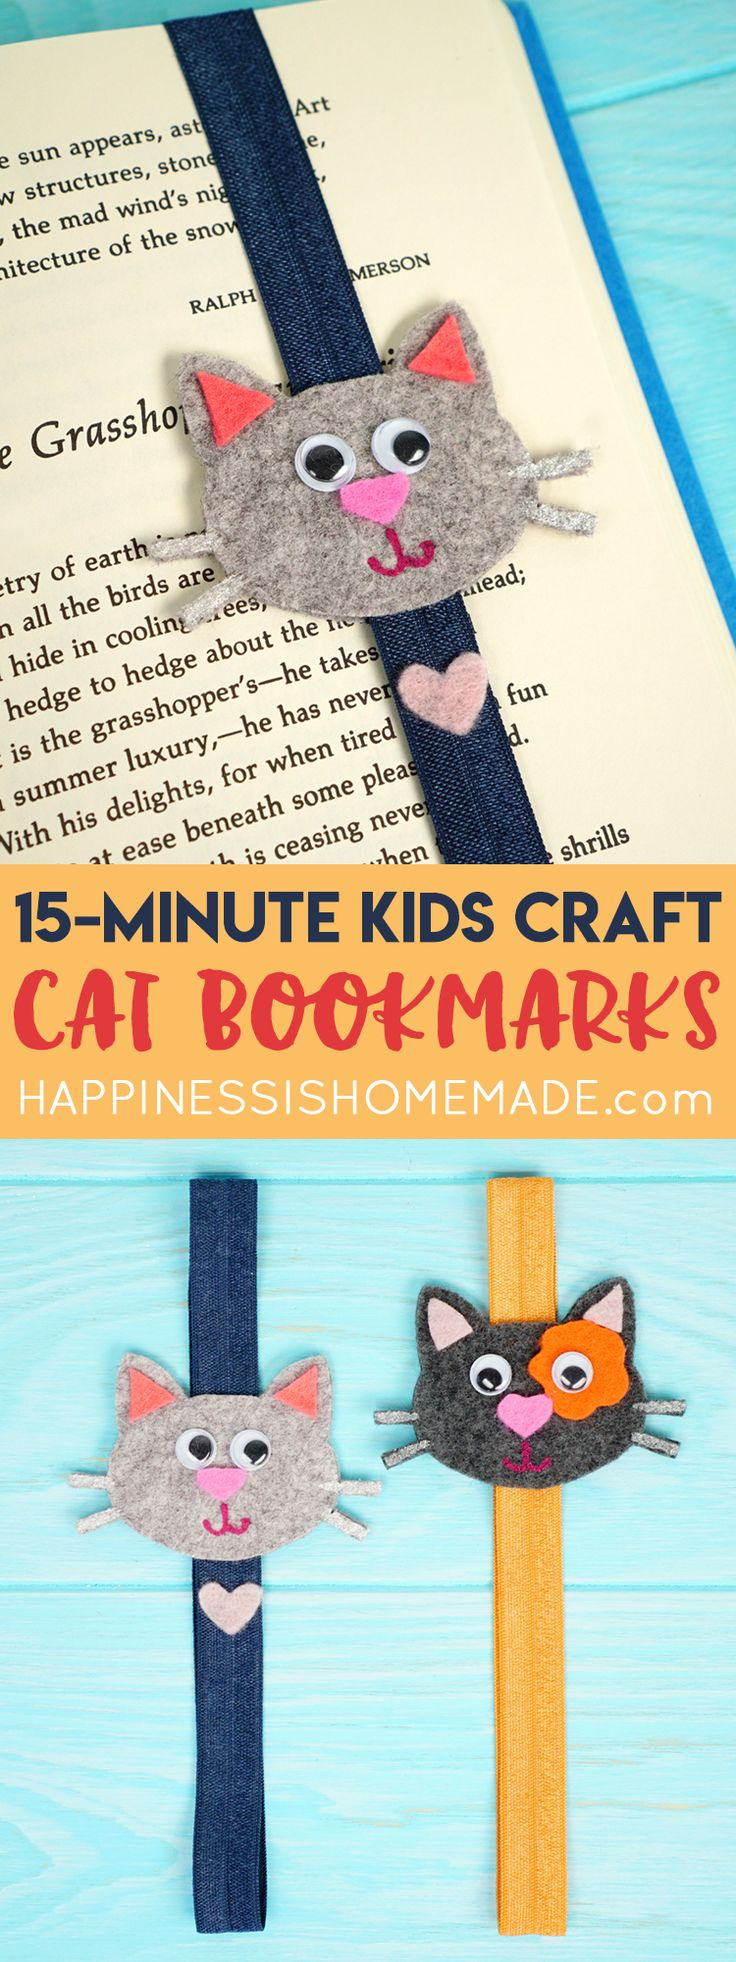 These Felt Cat Bookmarks are a quick and easy craft for kids that can be made in just 15 minutes, and they're a great way to use up leftover felt scraps! Customize your kitty bookmark to look like your favorite feline friend! via @hiHomemadeBlog